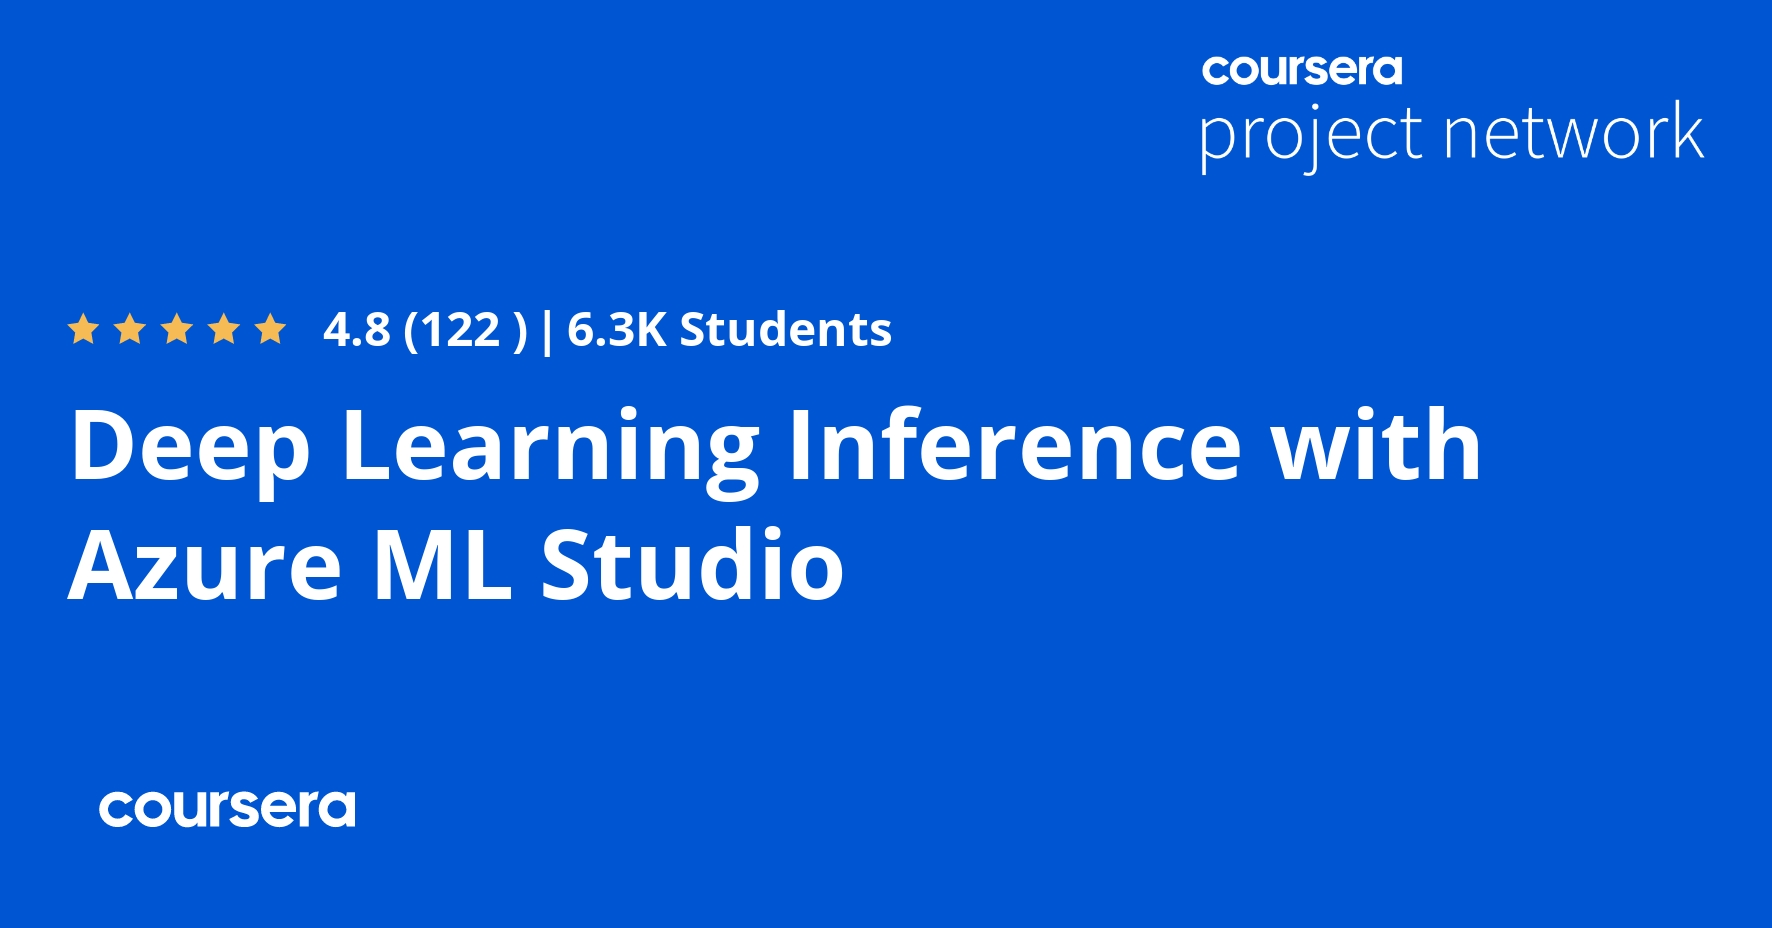 Deep Learning Inference with Azure ML Studio (Coursera)